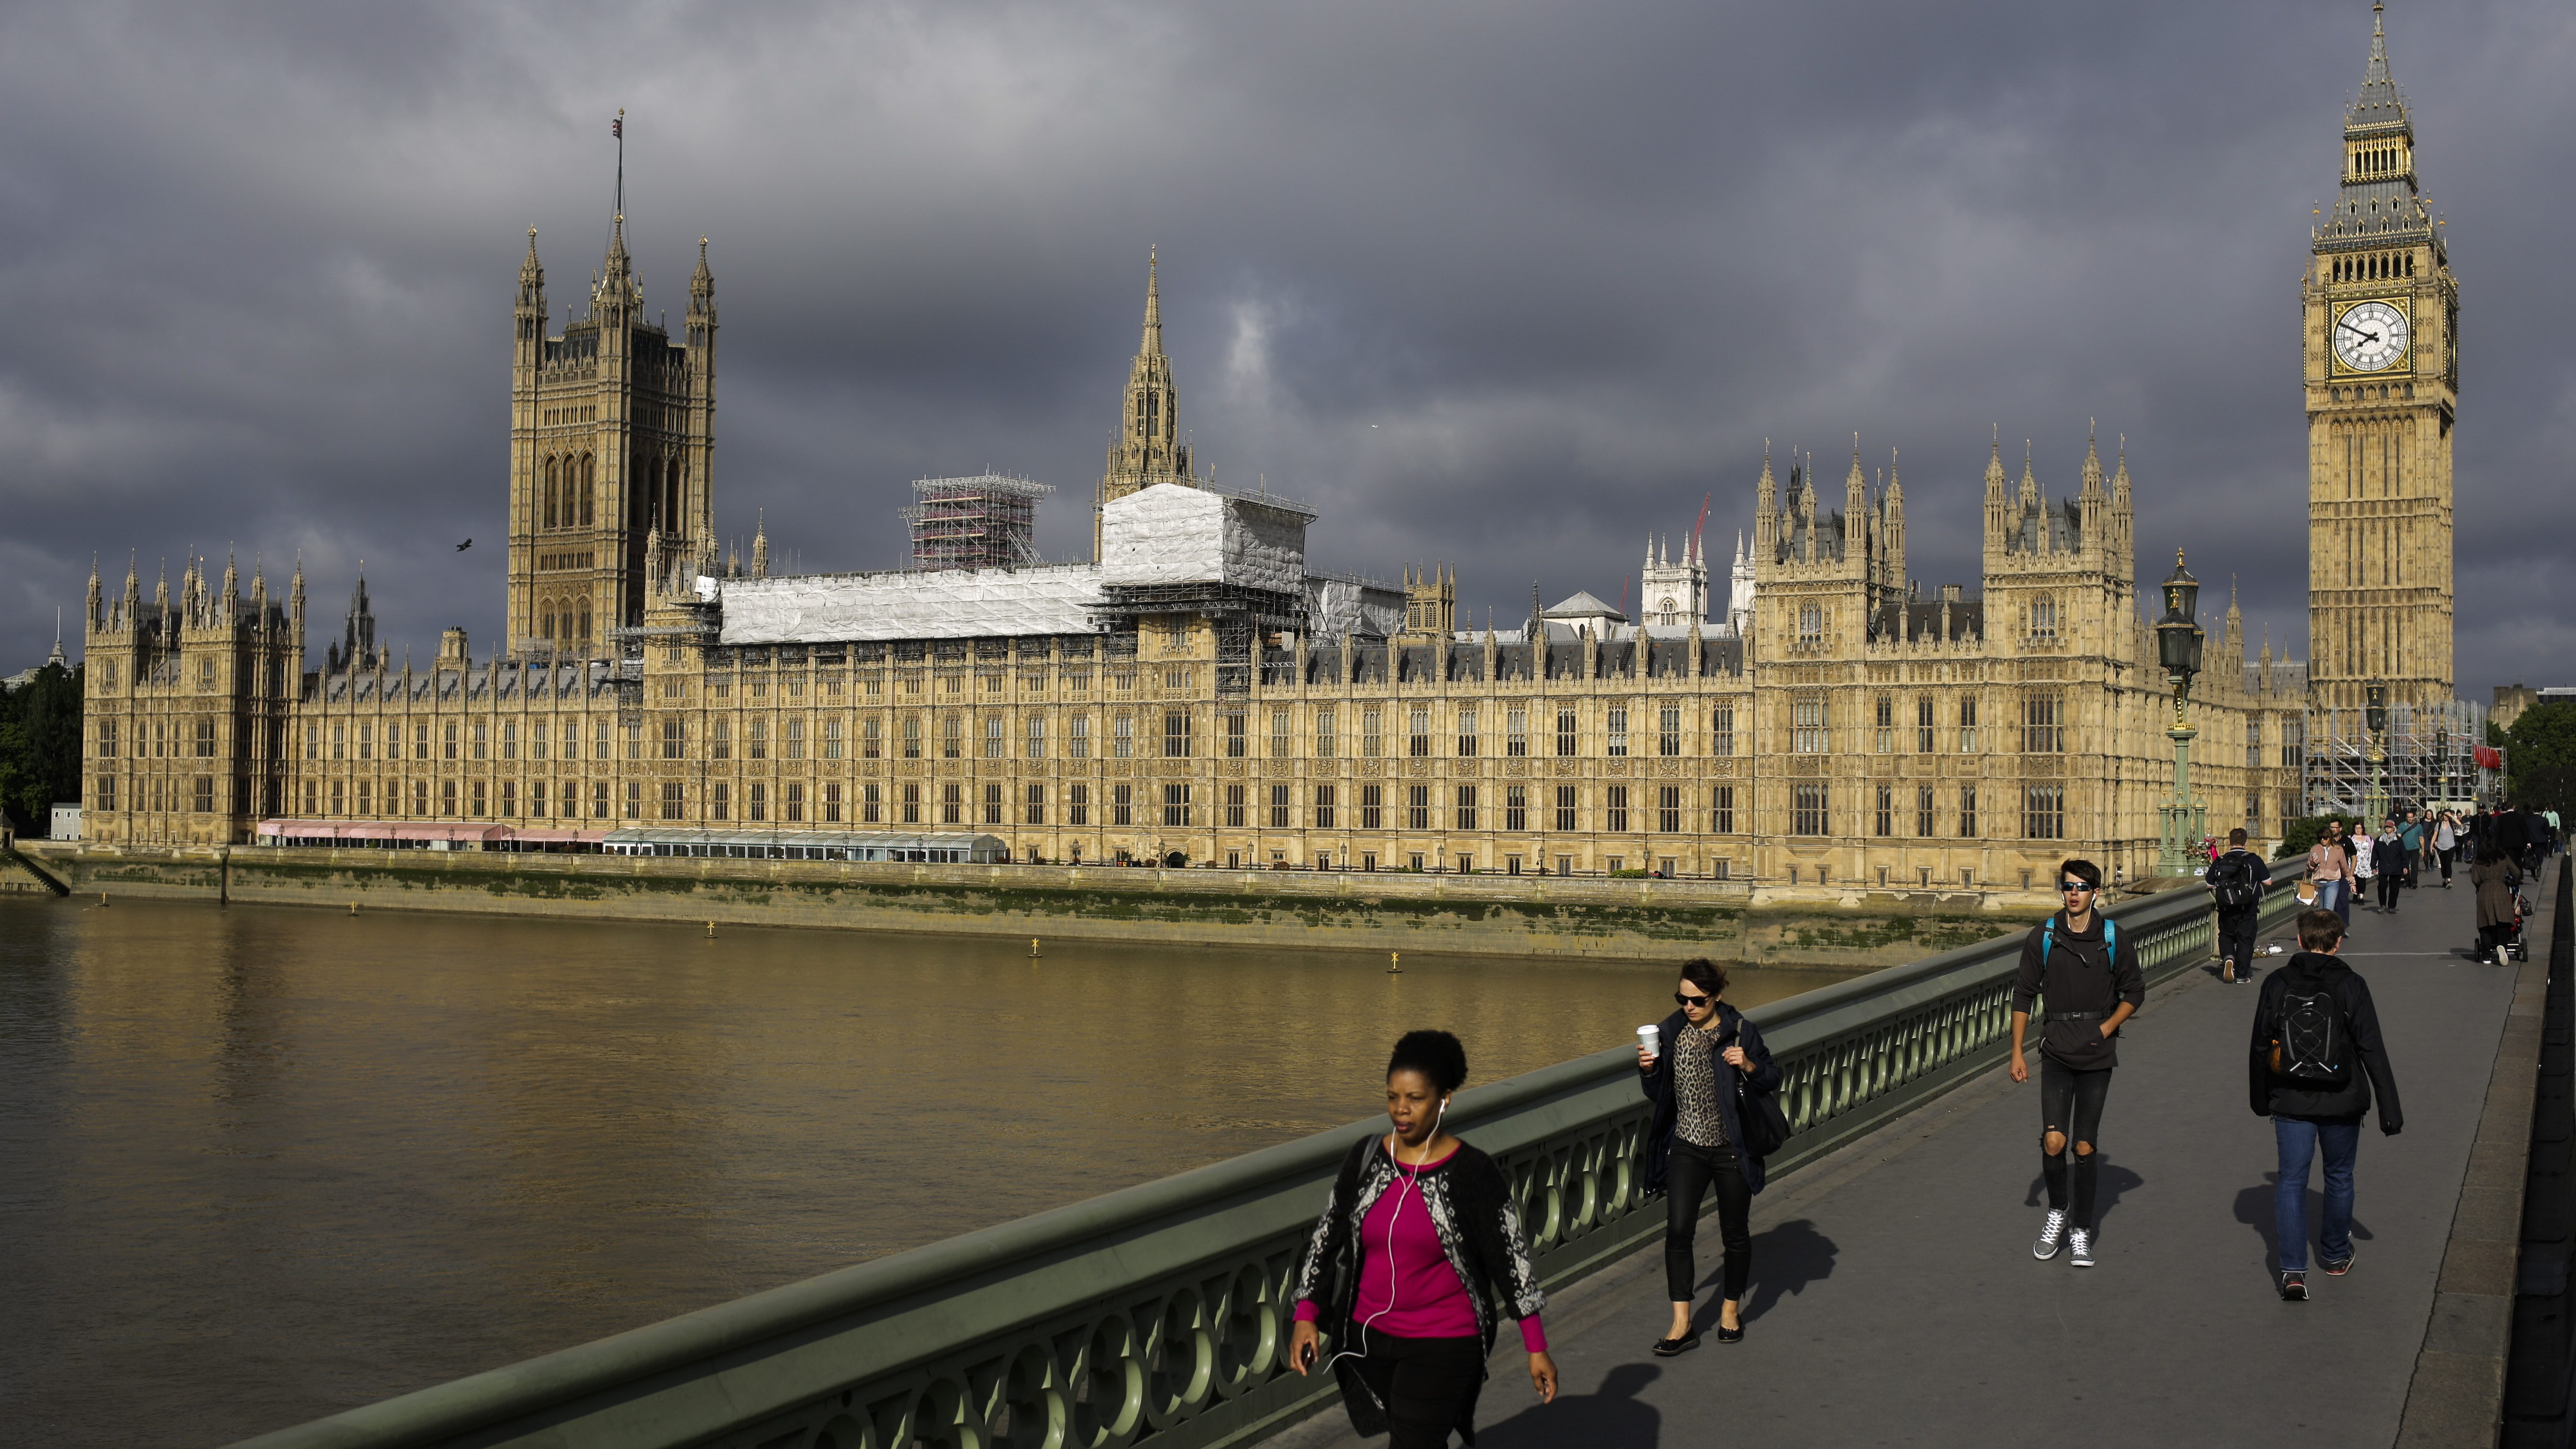 People cross Westminster Bridge in front of the Houses of Parliament the day after Britain's national elections on London, Friday, June 9, 2017. British Prime Minister Theresa May's gamble in calling an early general election backfired spectacularly, as her Conservative Party lost its majority in Parliament and pressure mounted on her Friday to resign. (AP Photo/Markus Schreiber)